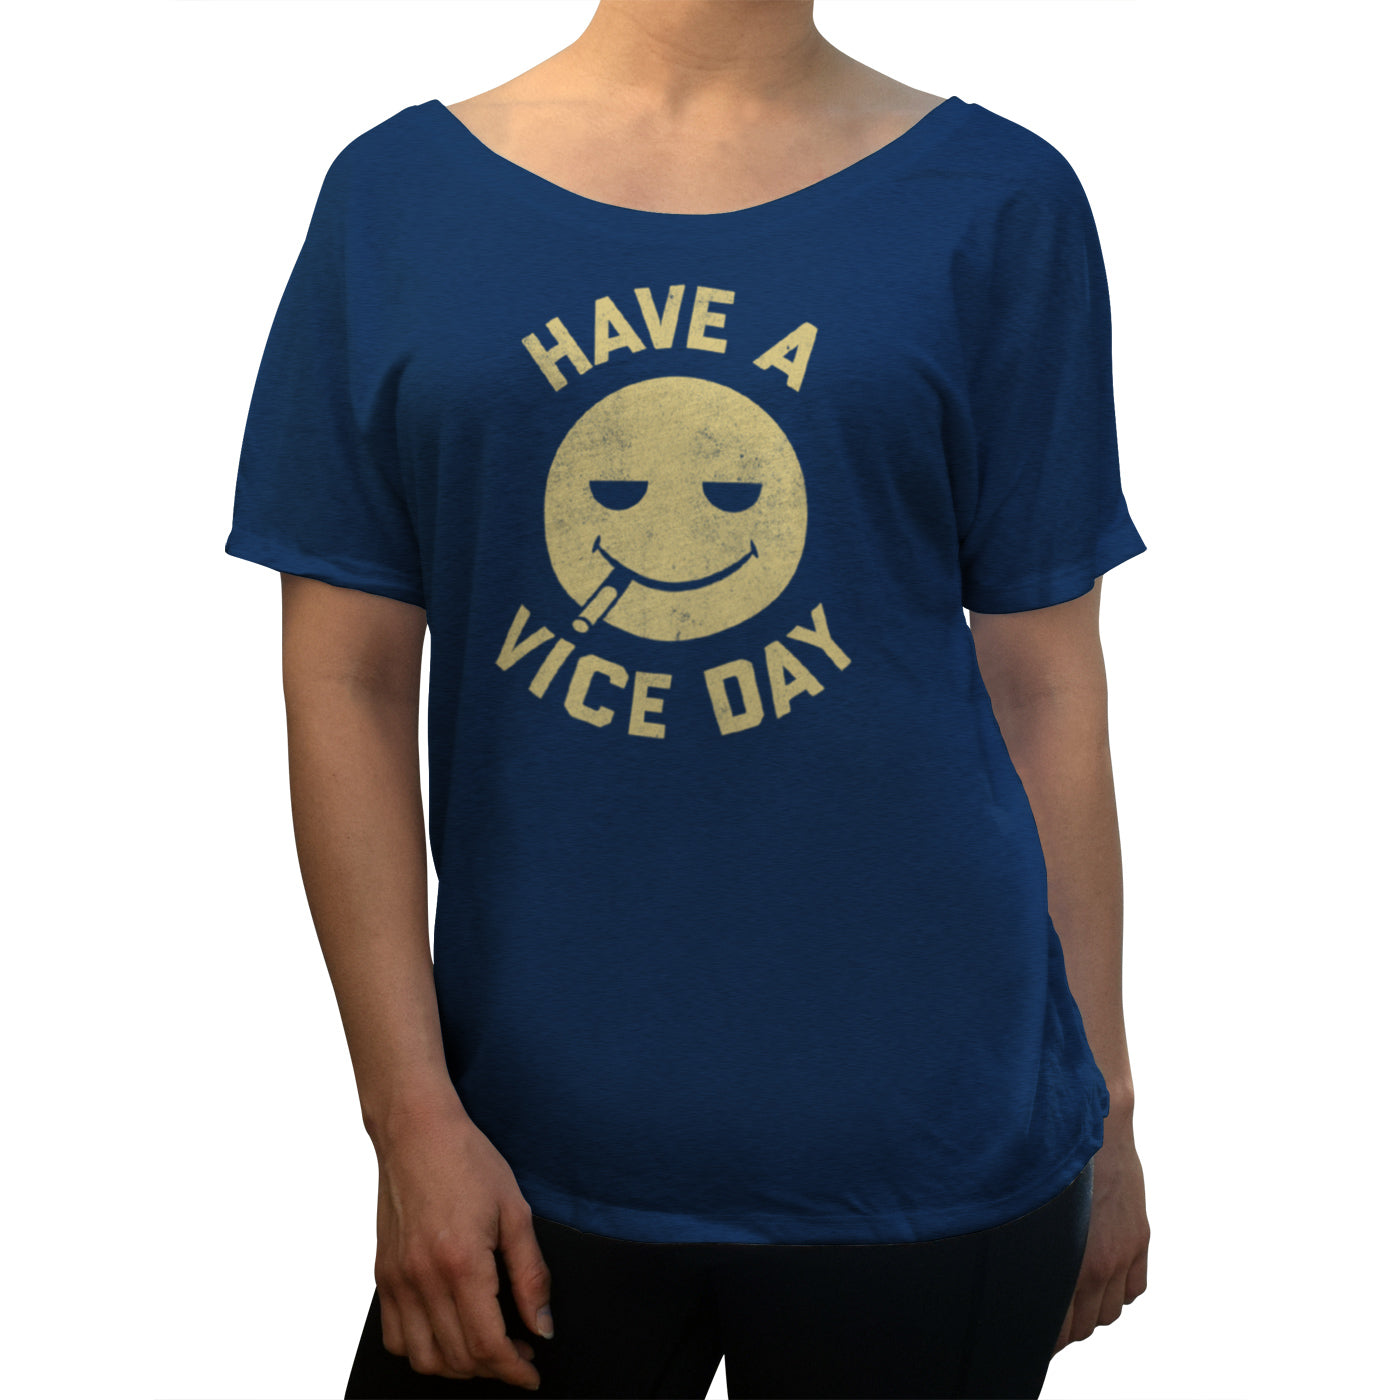 Women's Have a Vice Day Scoop Neck T-Shirt